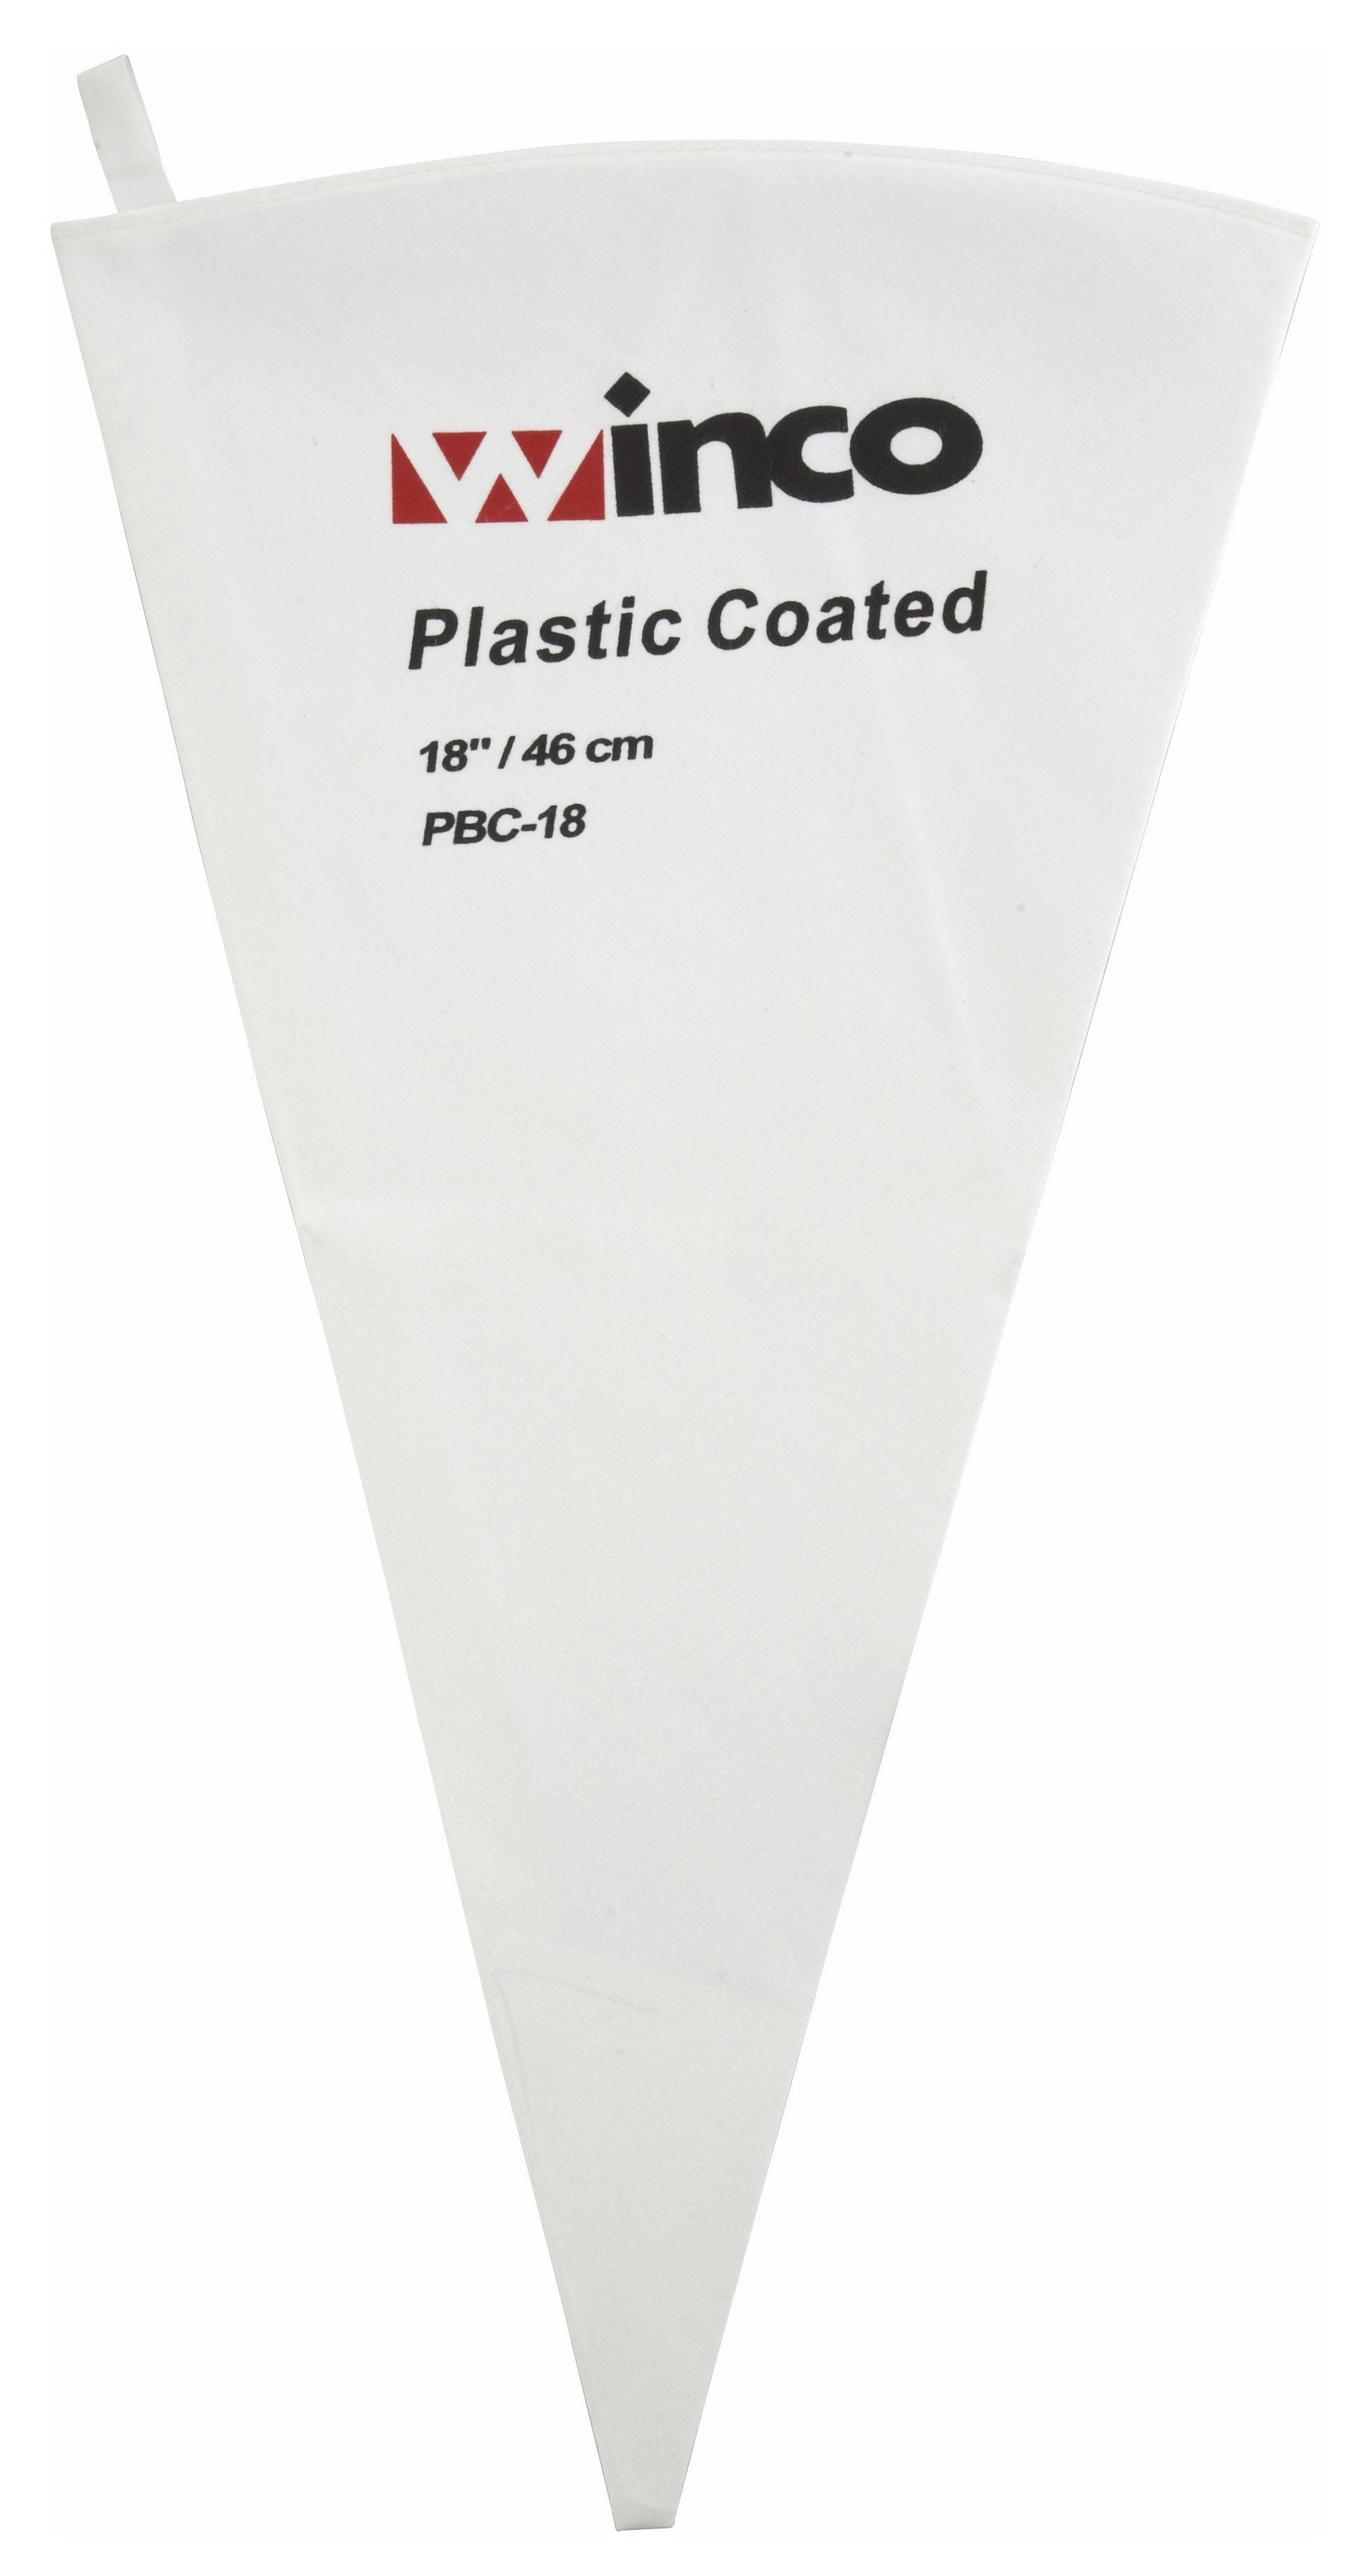 Winco PBC-18 Cotton Pastry Bag with Inner Plastic Coating, 18""